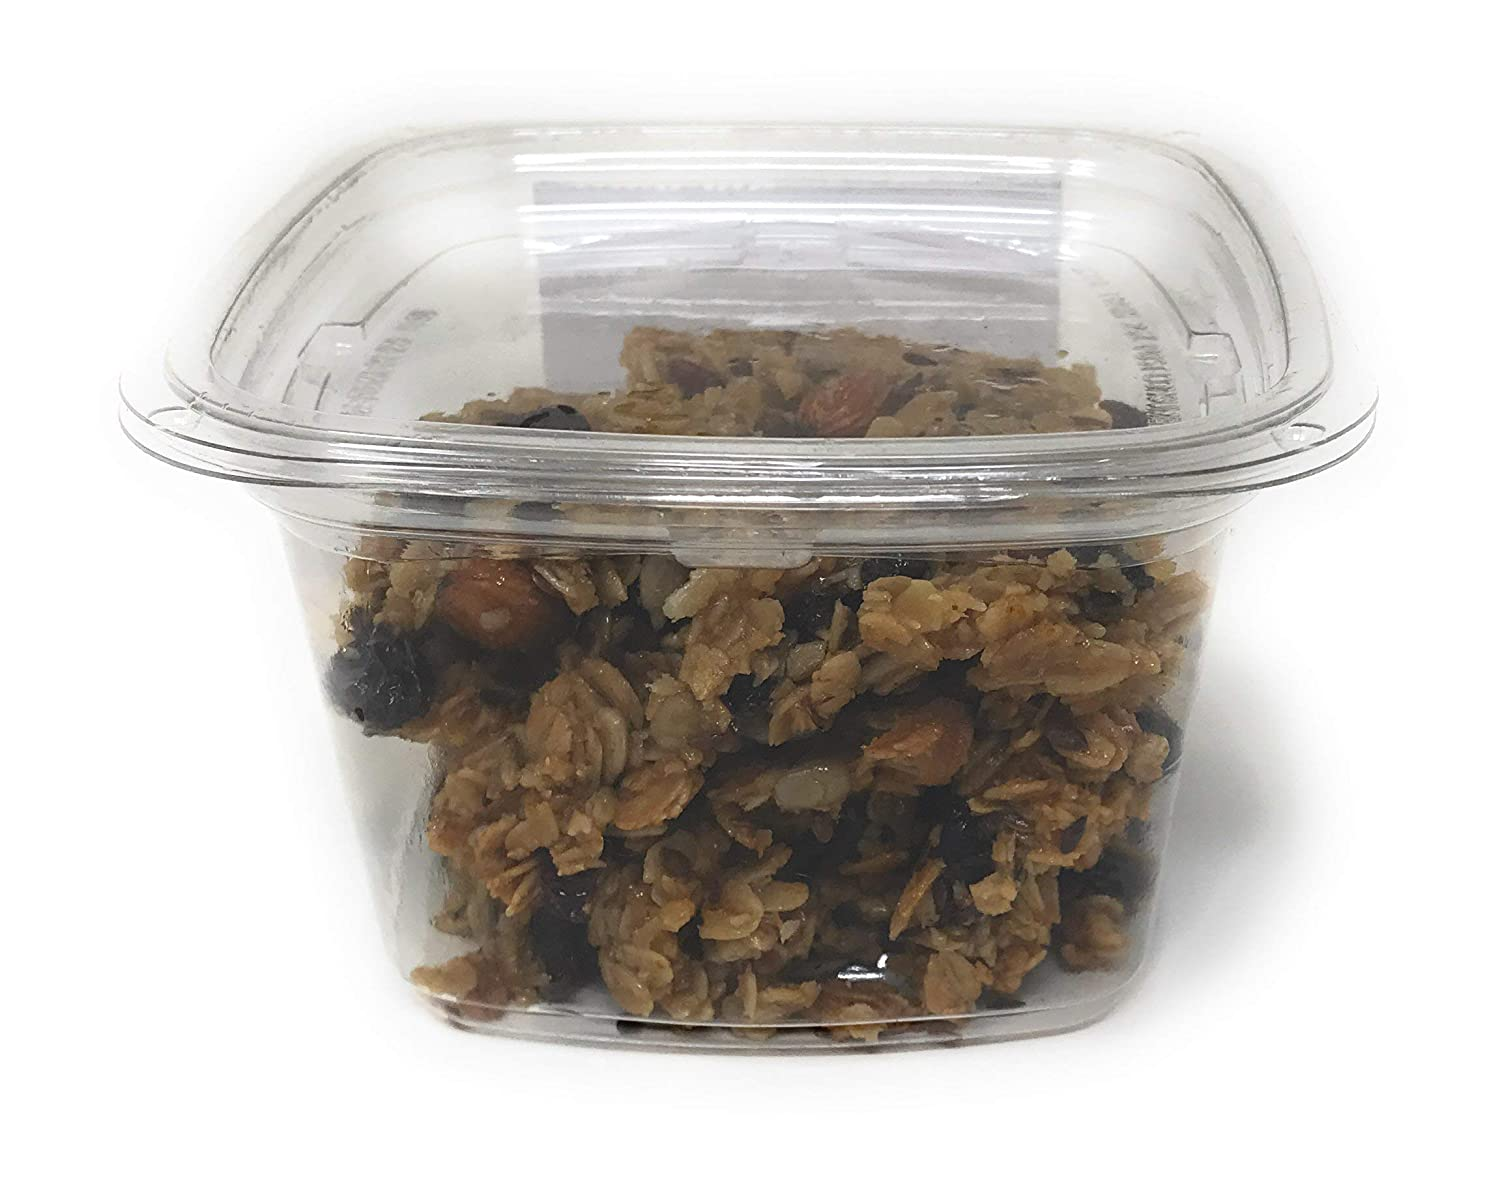 free shipping Whole Foods Market Blueberry Granola Limited time trial price